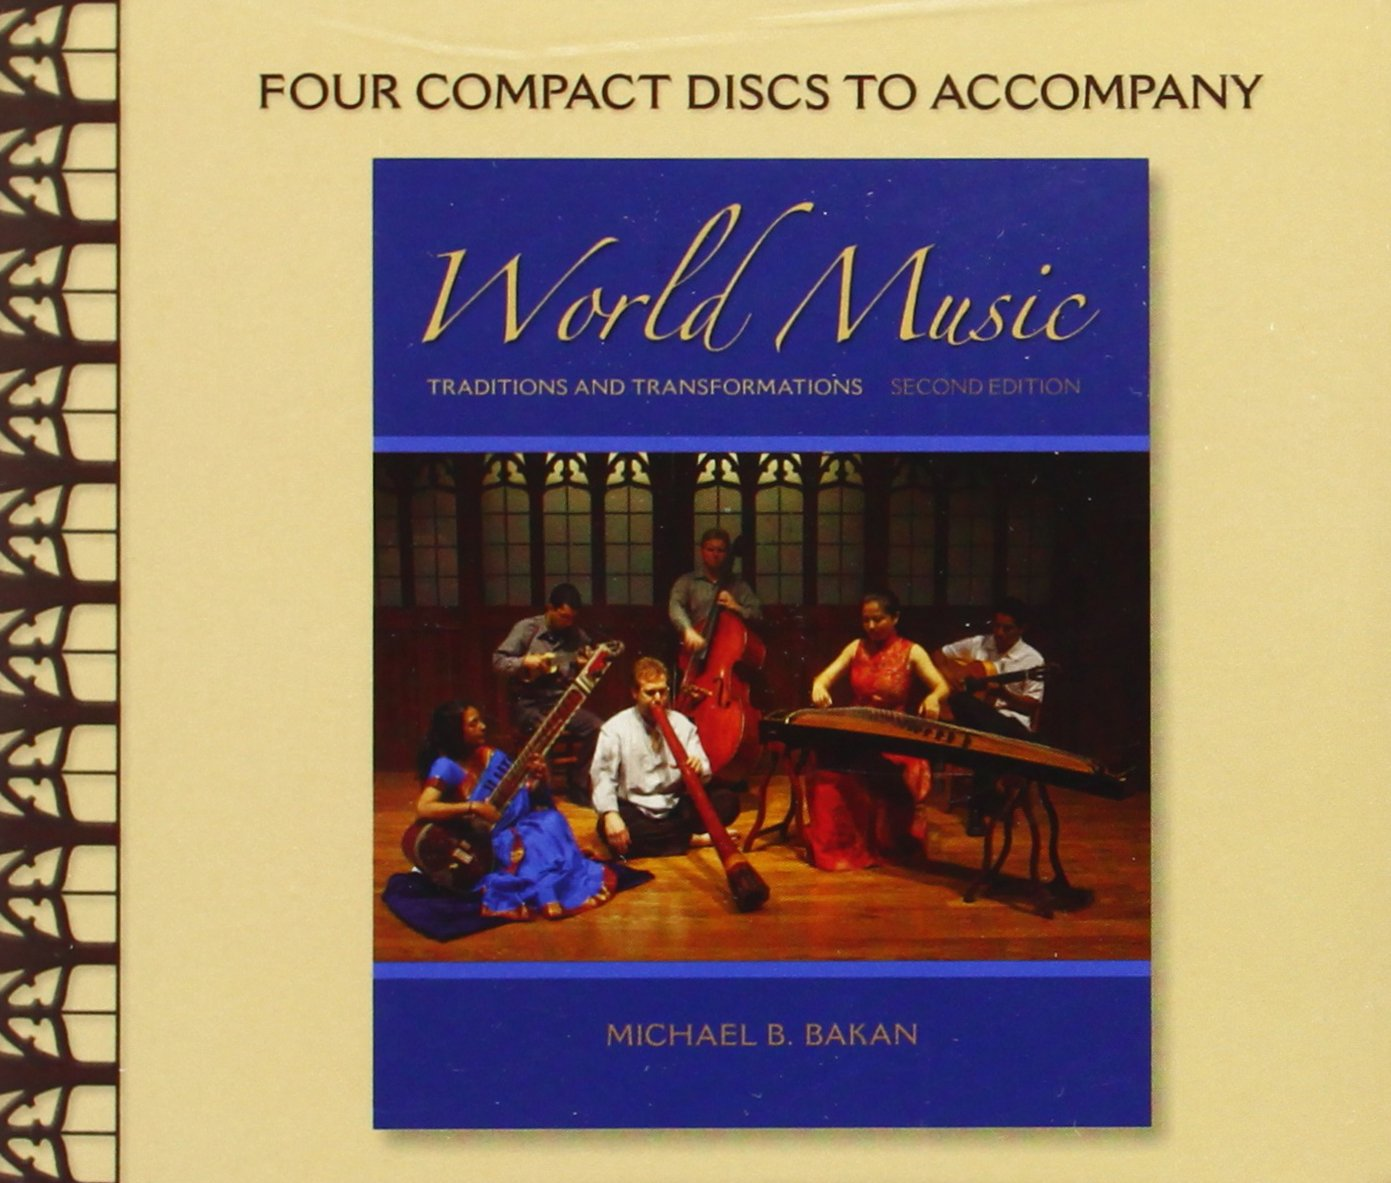 CD Set for World Music: Traditions and Transformations by McGraw-Hill Education